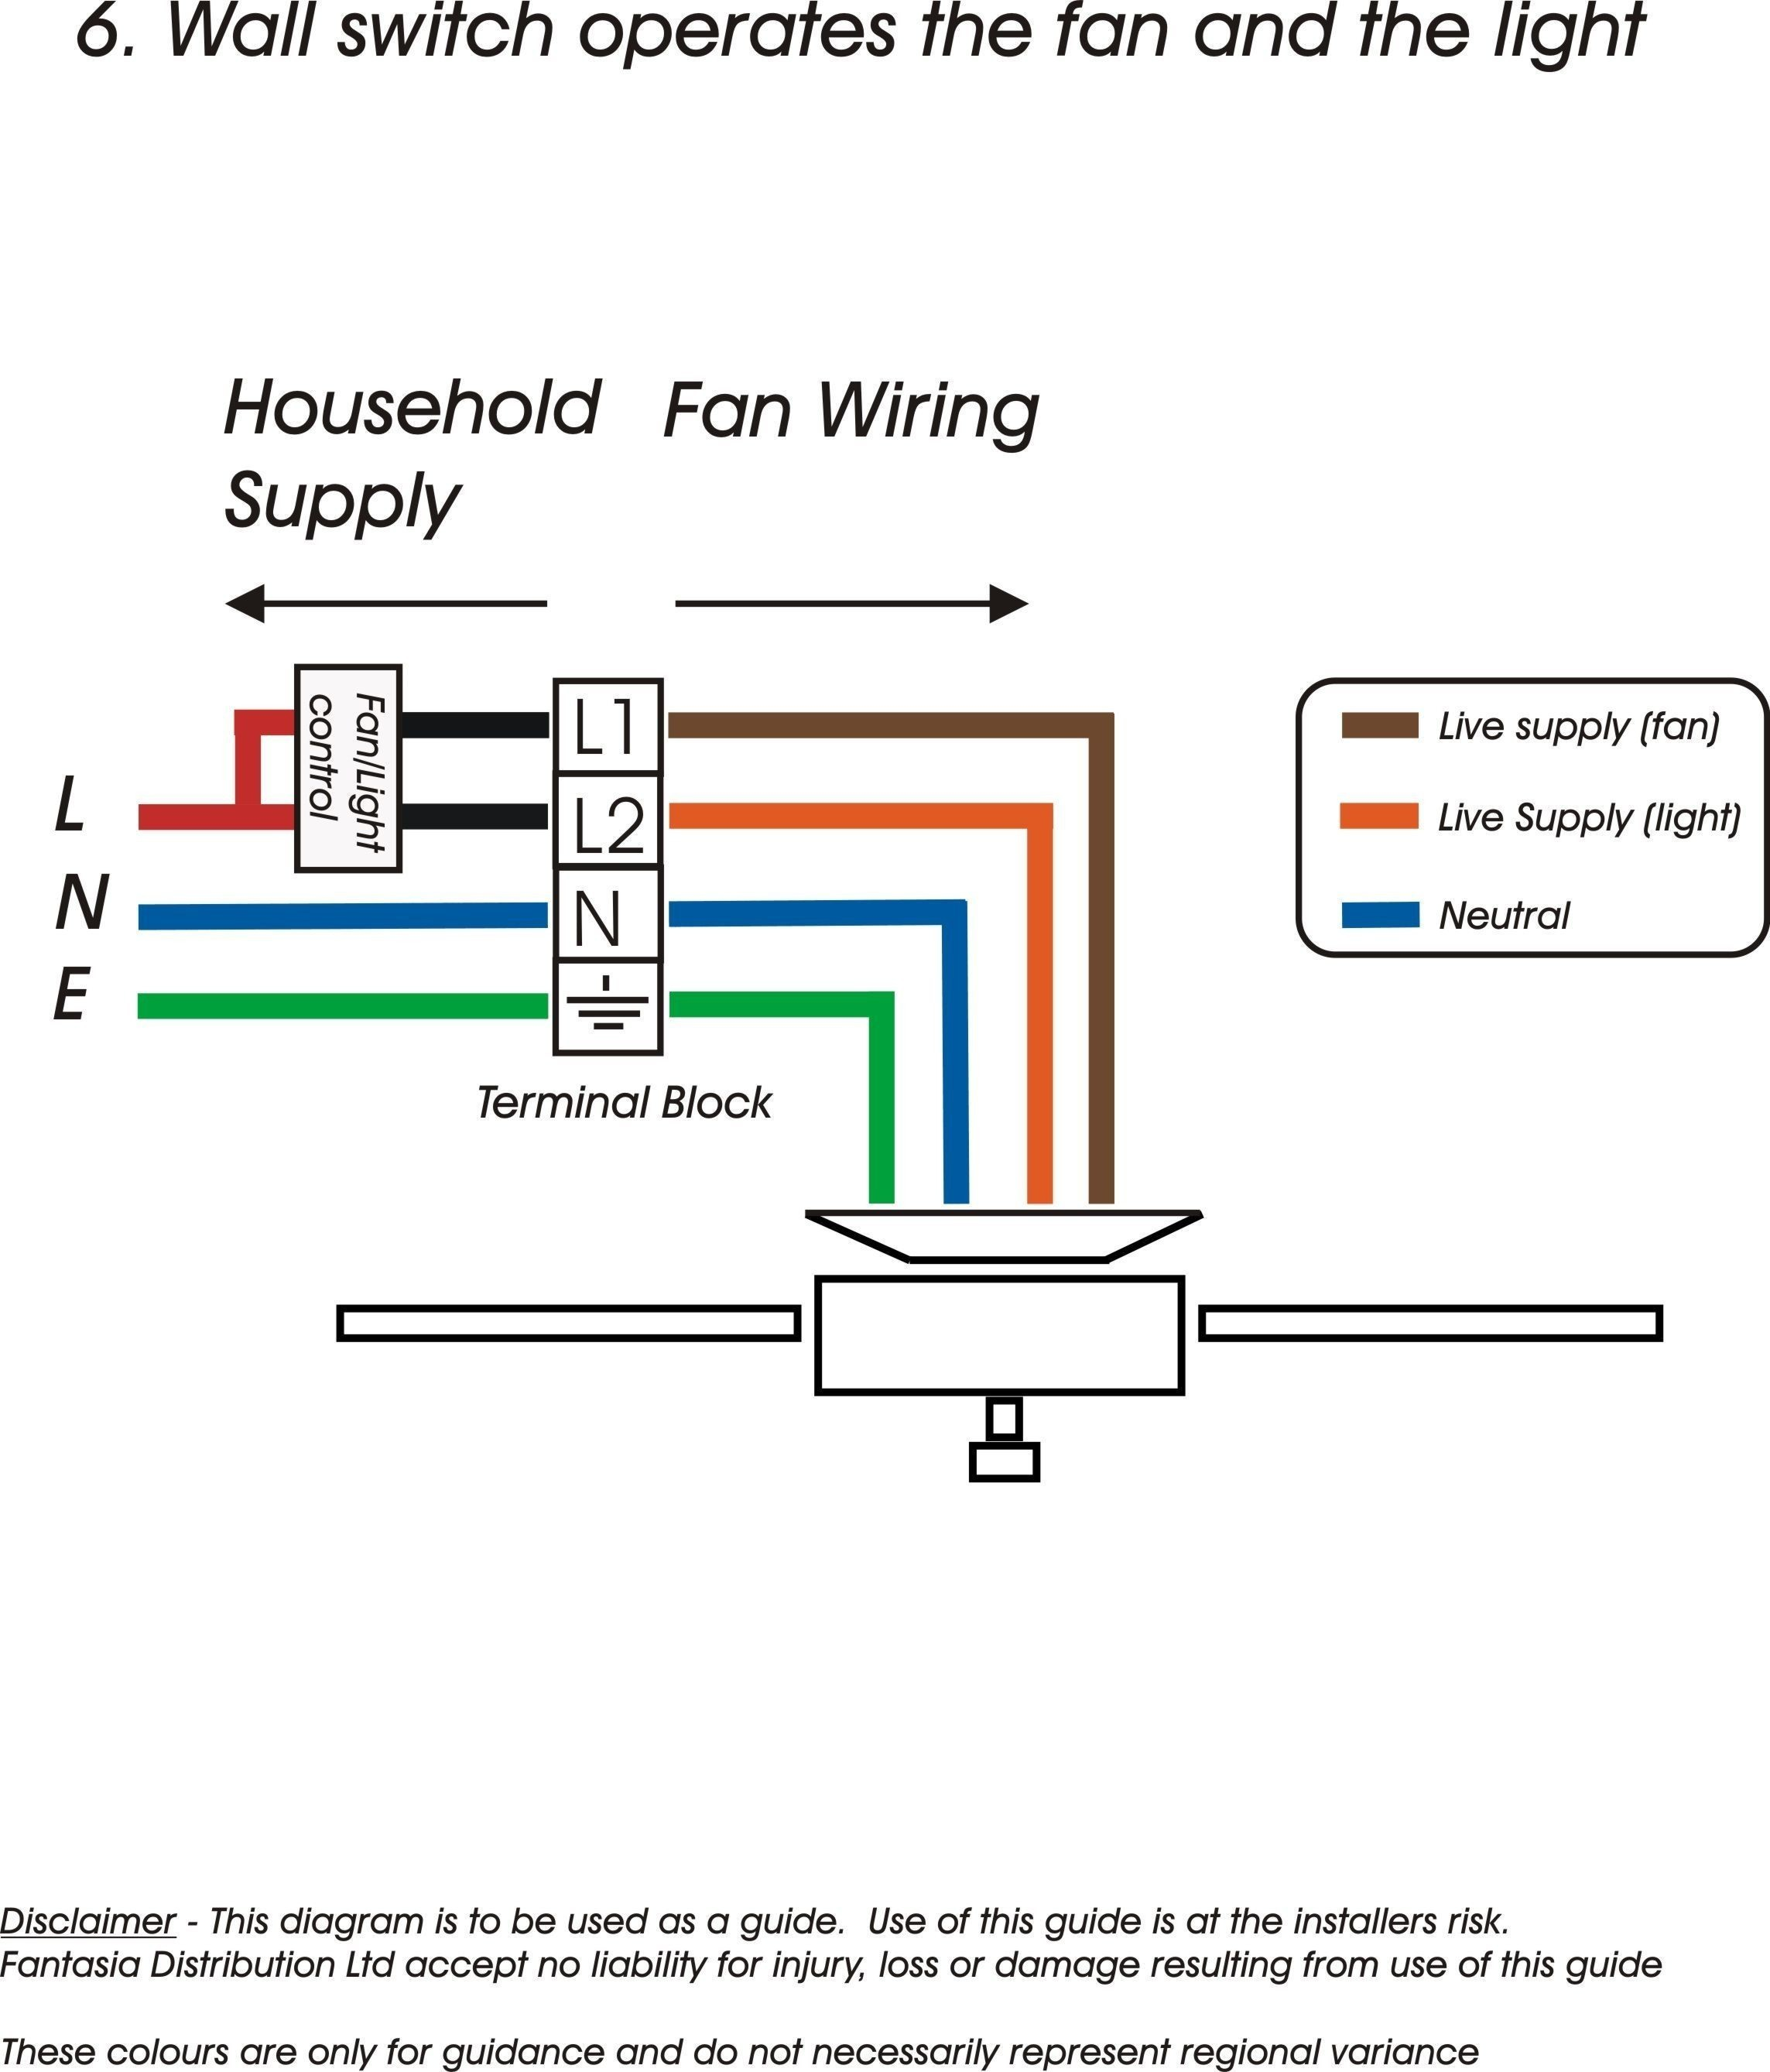 NW_5071] Taurus Electric Fan Wiring Color Code Free Download Wiring Diagram  Download Diagram